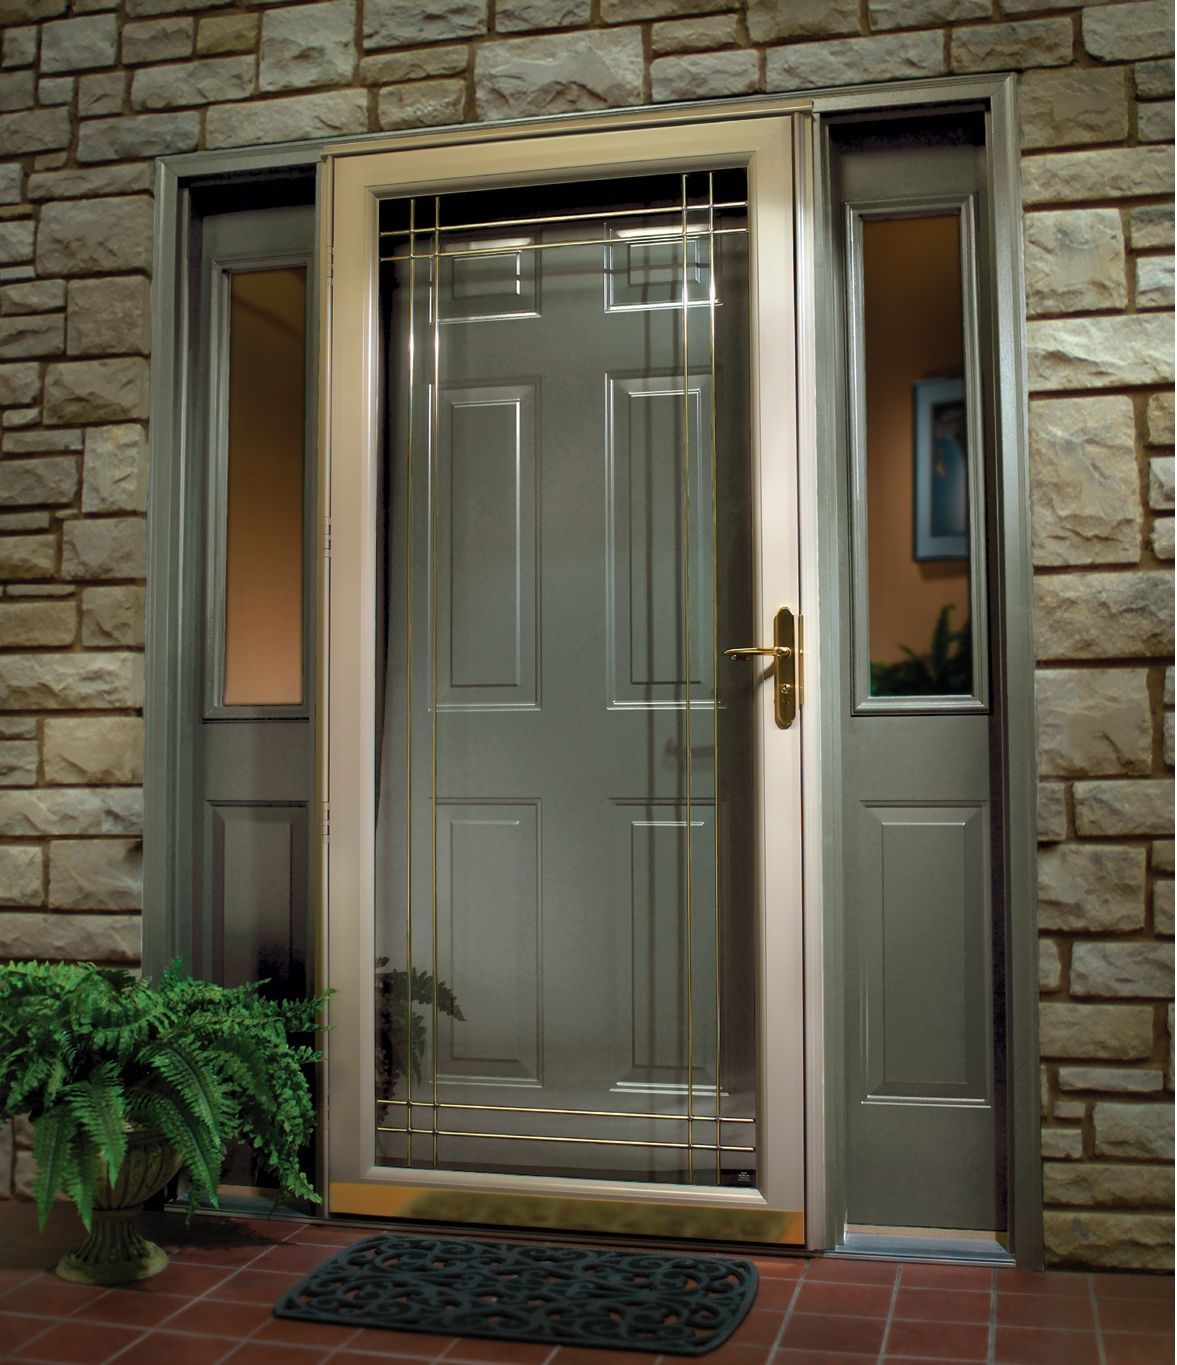 Exterior doors for homes front door ideas front entry for Home front entry doors